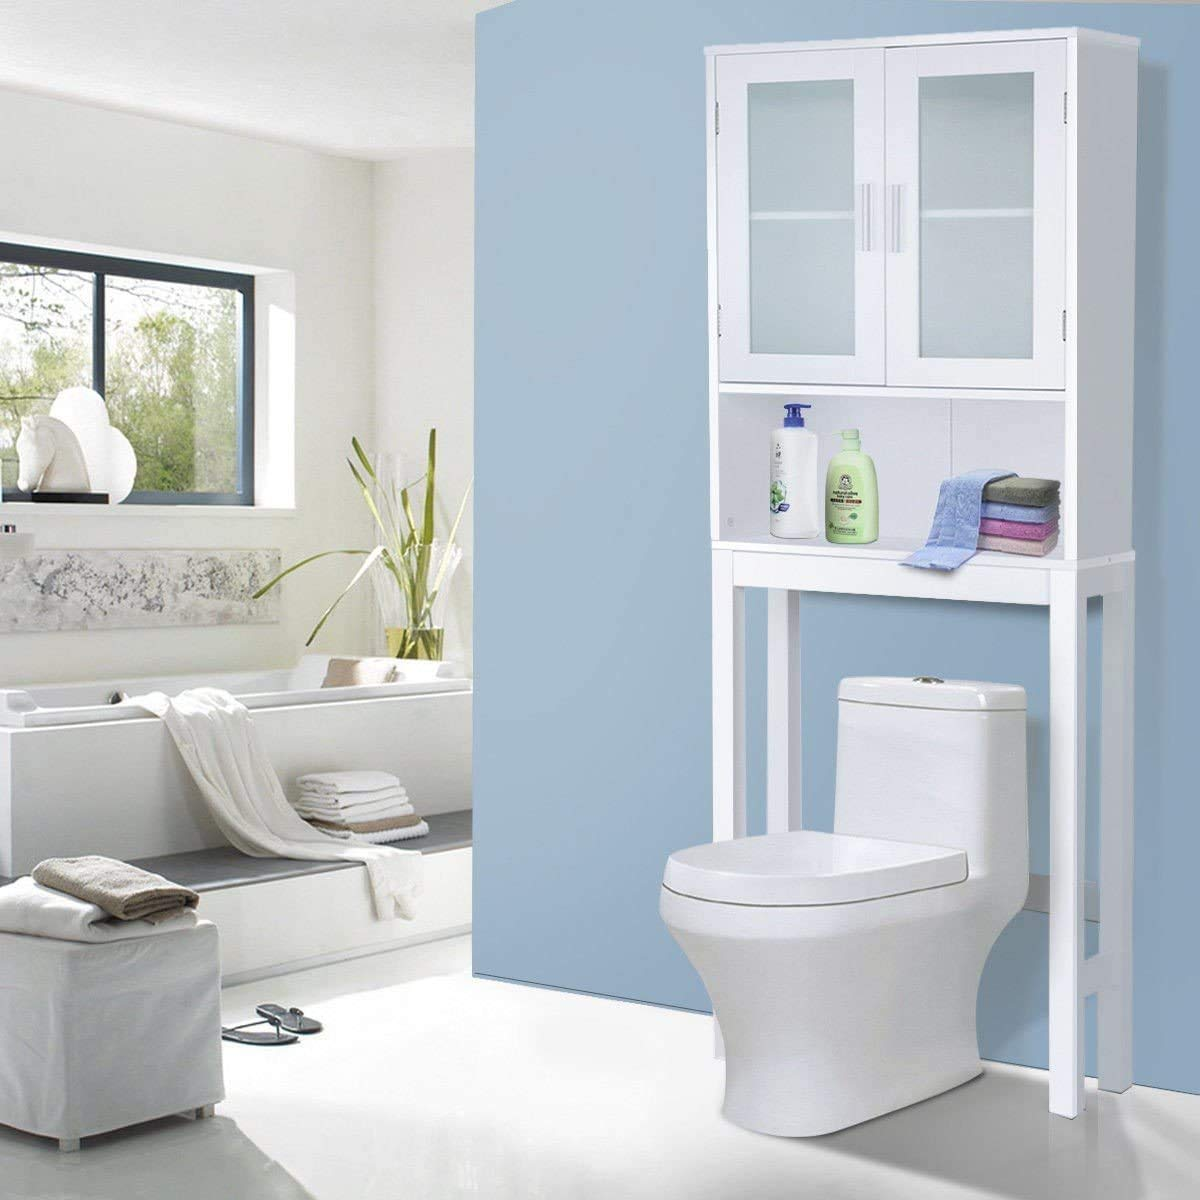 Waterjoy Home Bathroom Shelf Over-The-Toilet Bathroom Storage Cabinet Organizer Bathroom SpaceSaver (Upgraded Size+Frosted Glass)